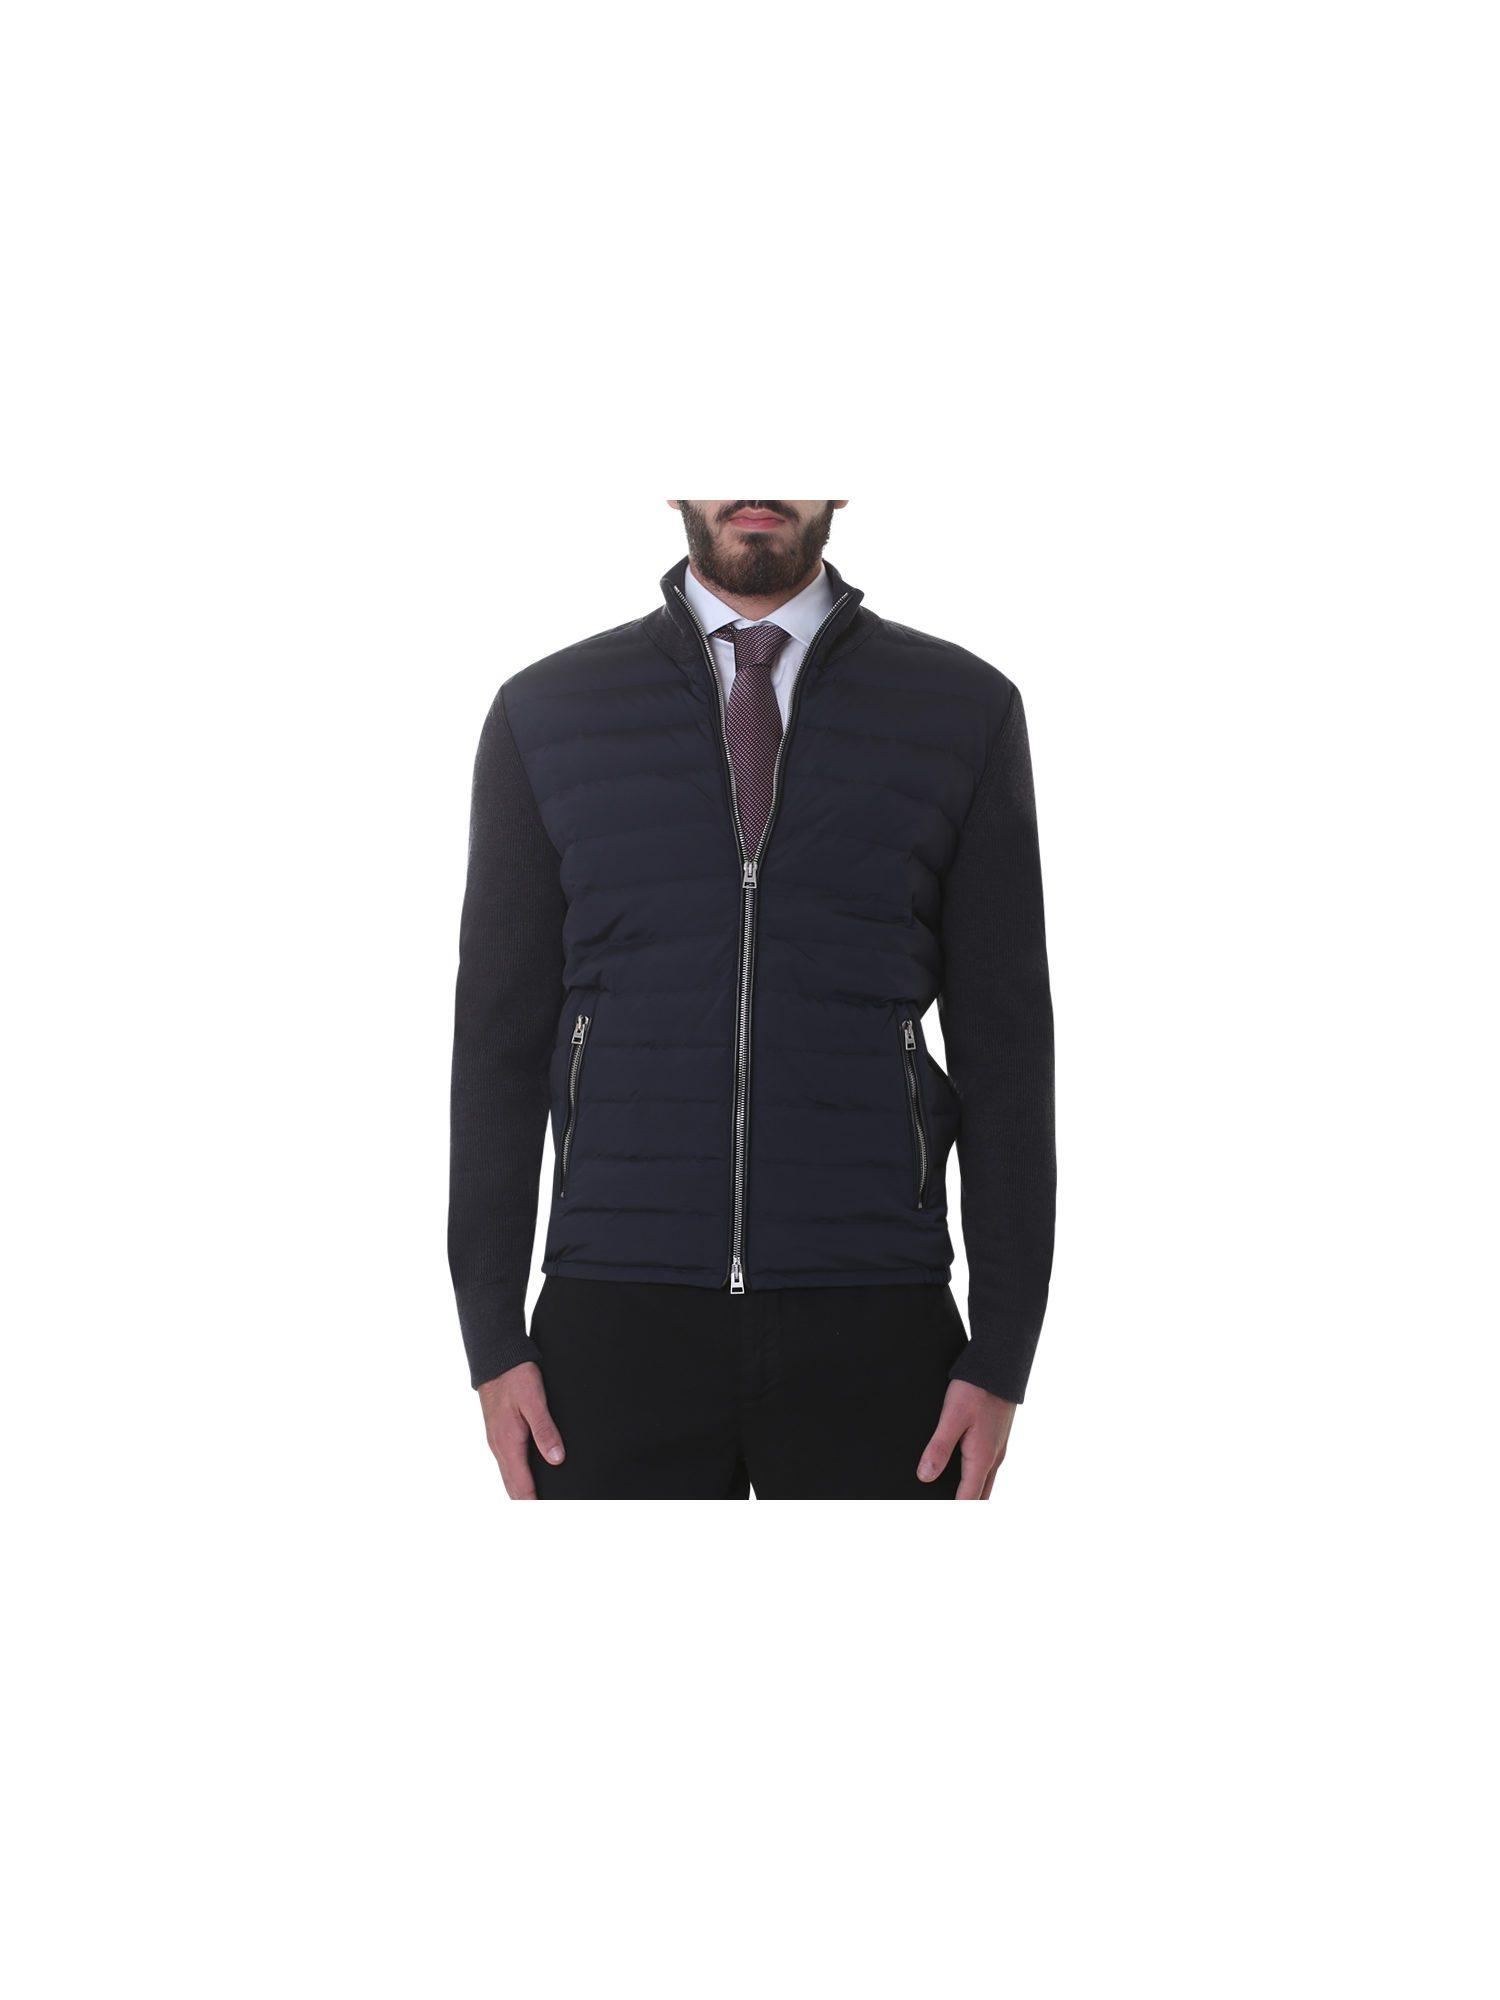 Tom Ford Blue Wool And Nylon Jacket for Men